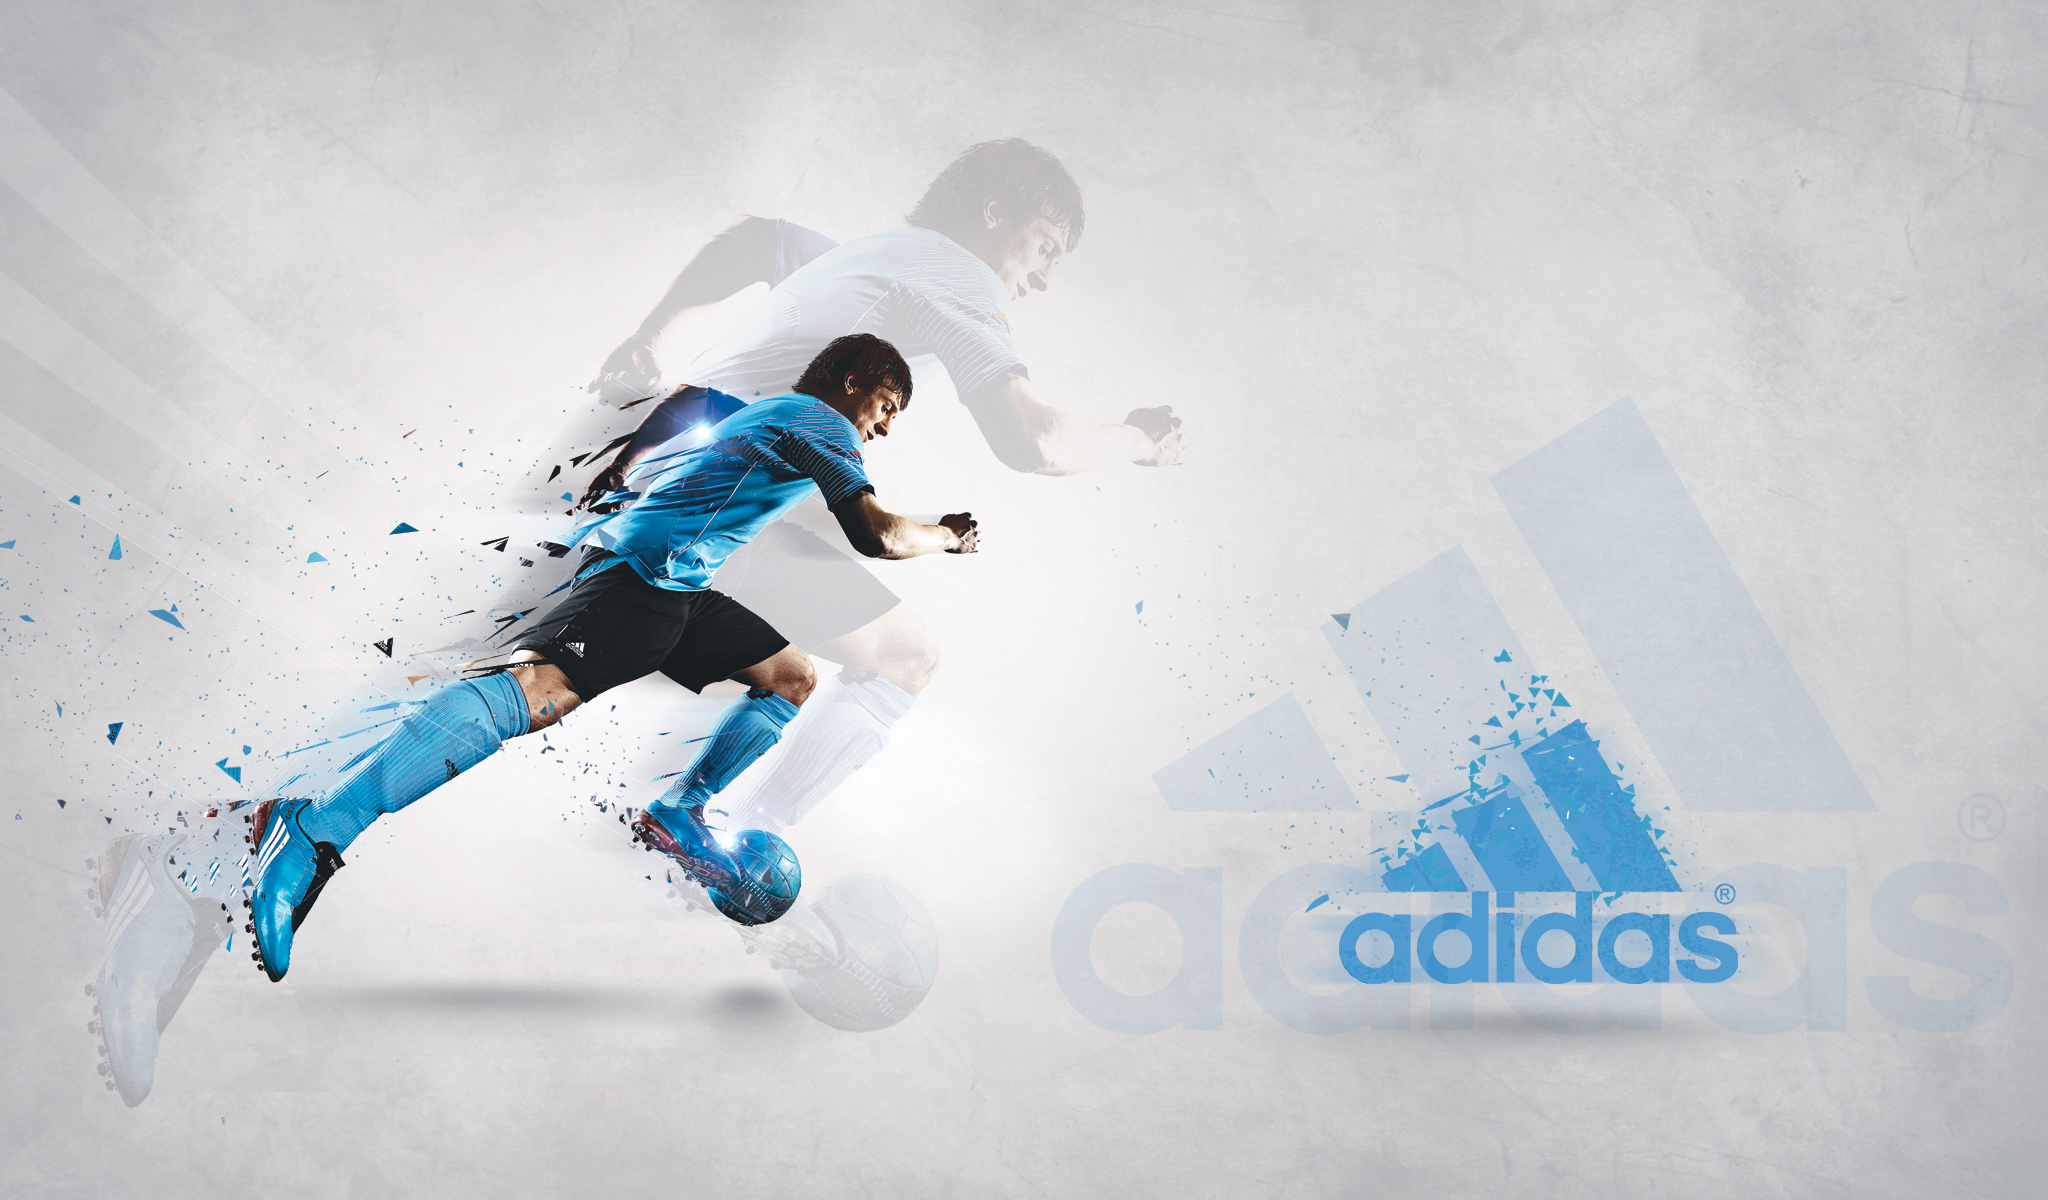 Adidas Messi Desktop Wallpaper 2048x1200 pixel Popular HD Wallpaper 2048x1200